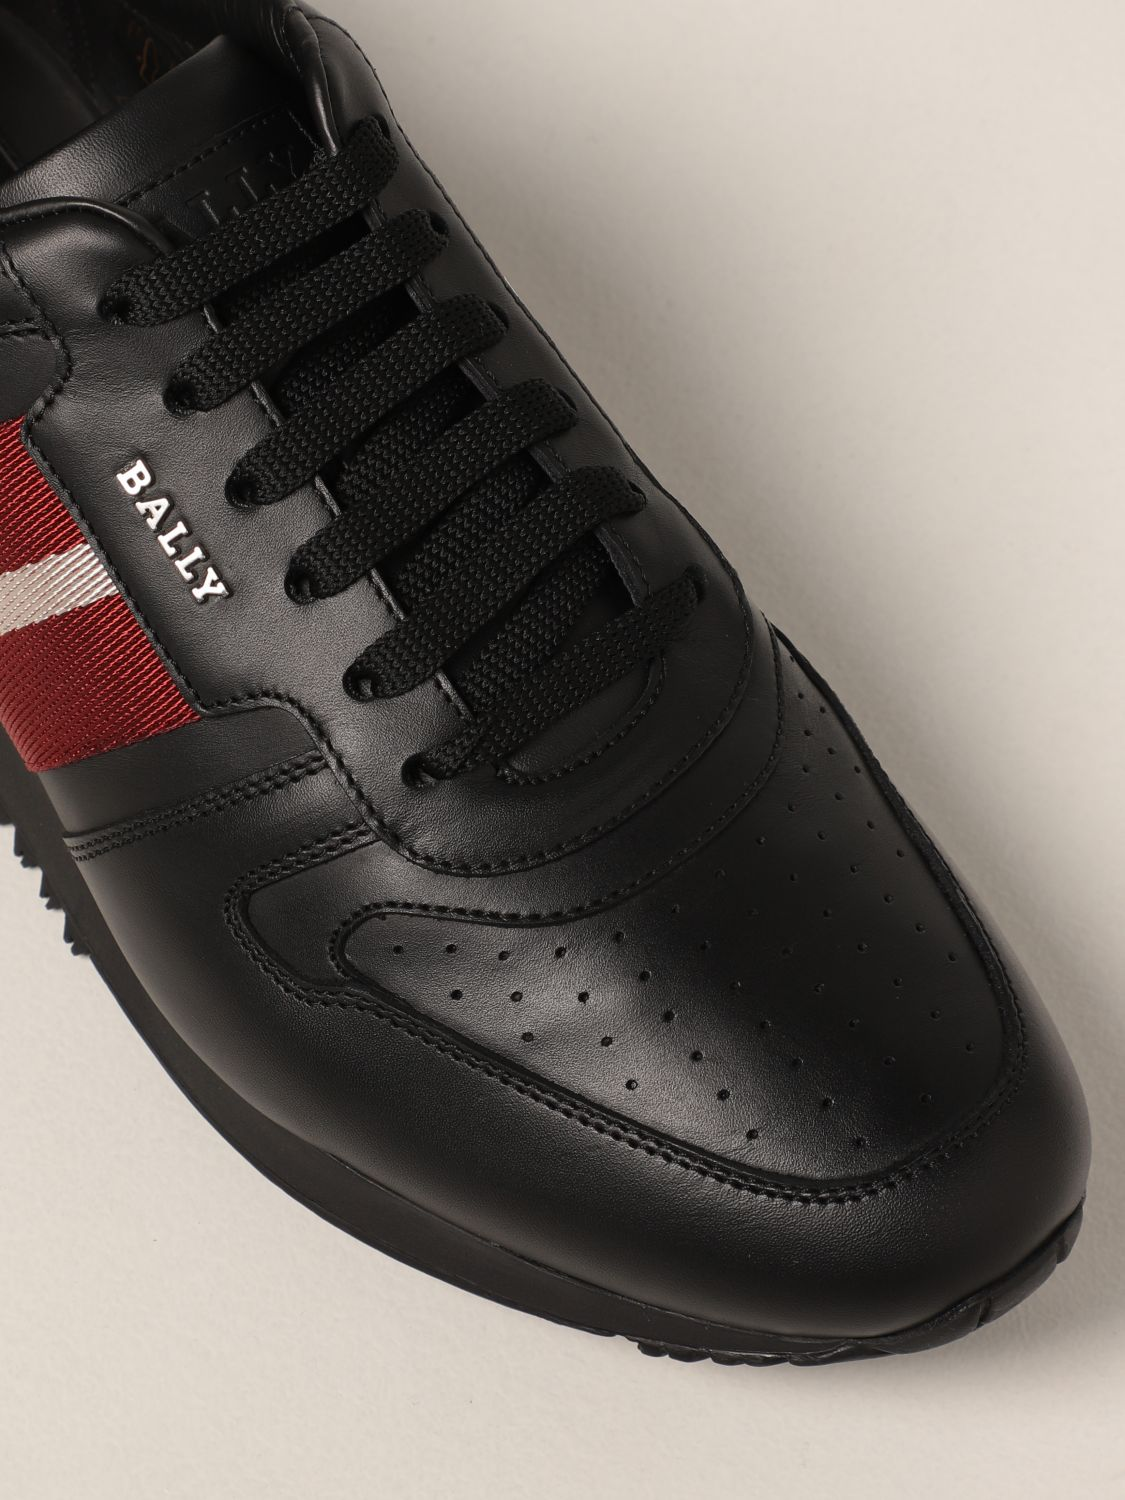 Sneakers Bally: Astel-fo Bally sneakers in leather black 4